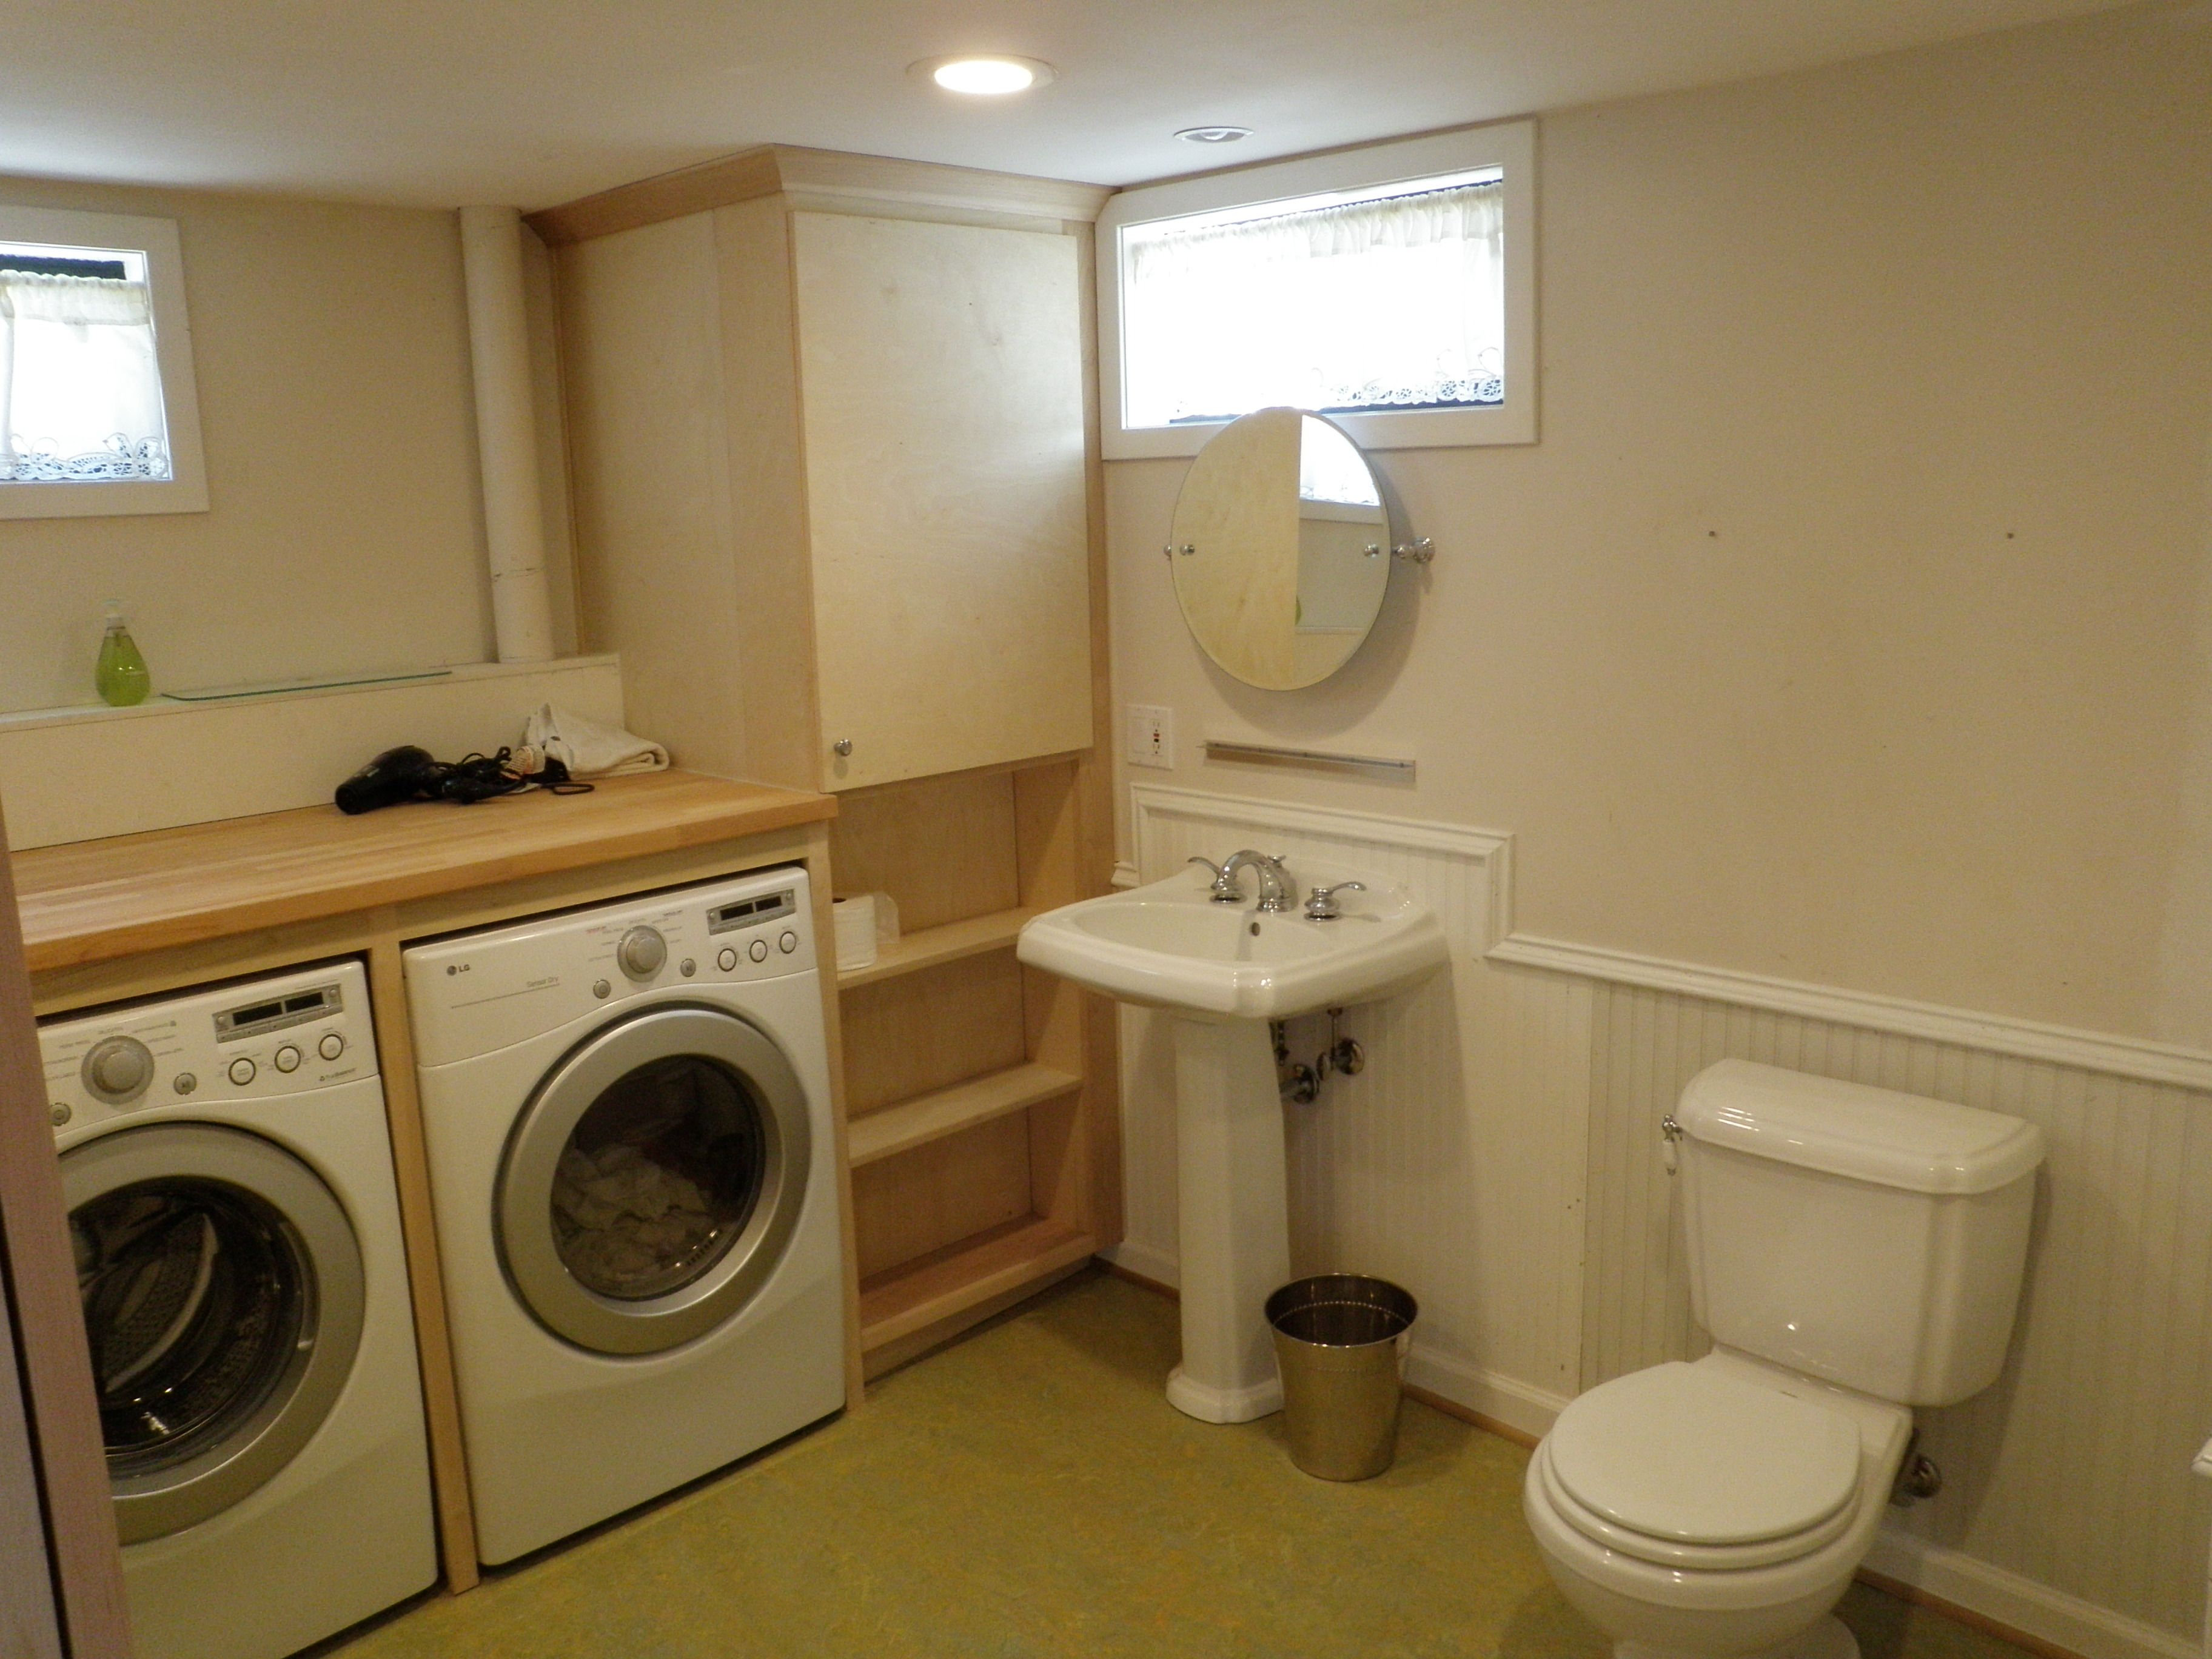 Small Bathroom Basement Designs in brief from the jobsite luxpdx | construction and renovation in